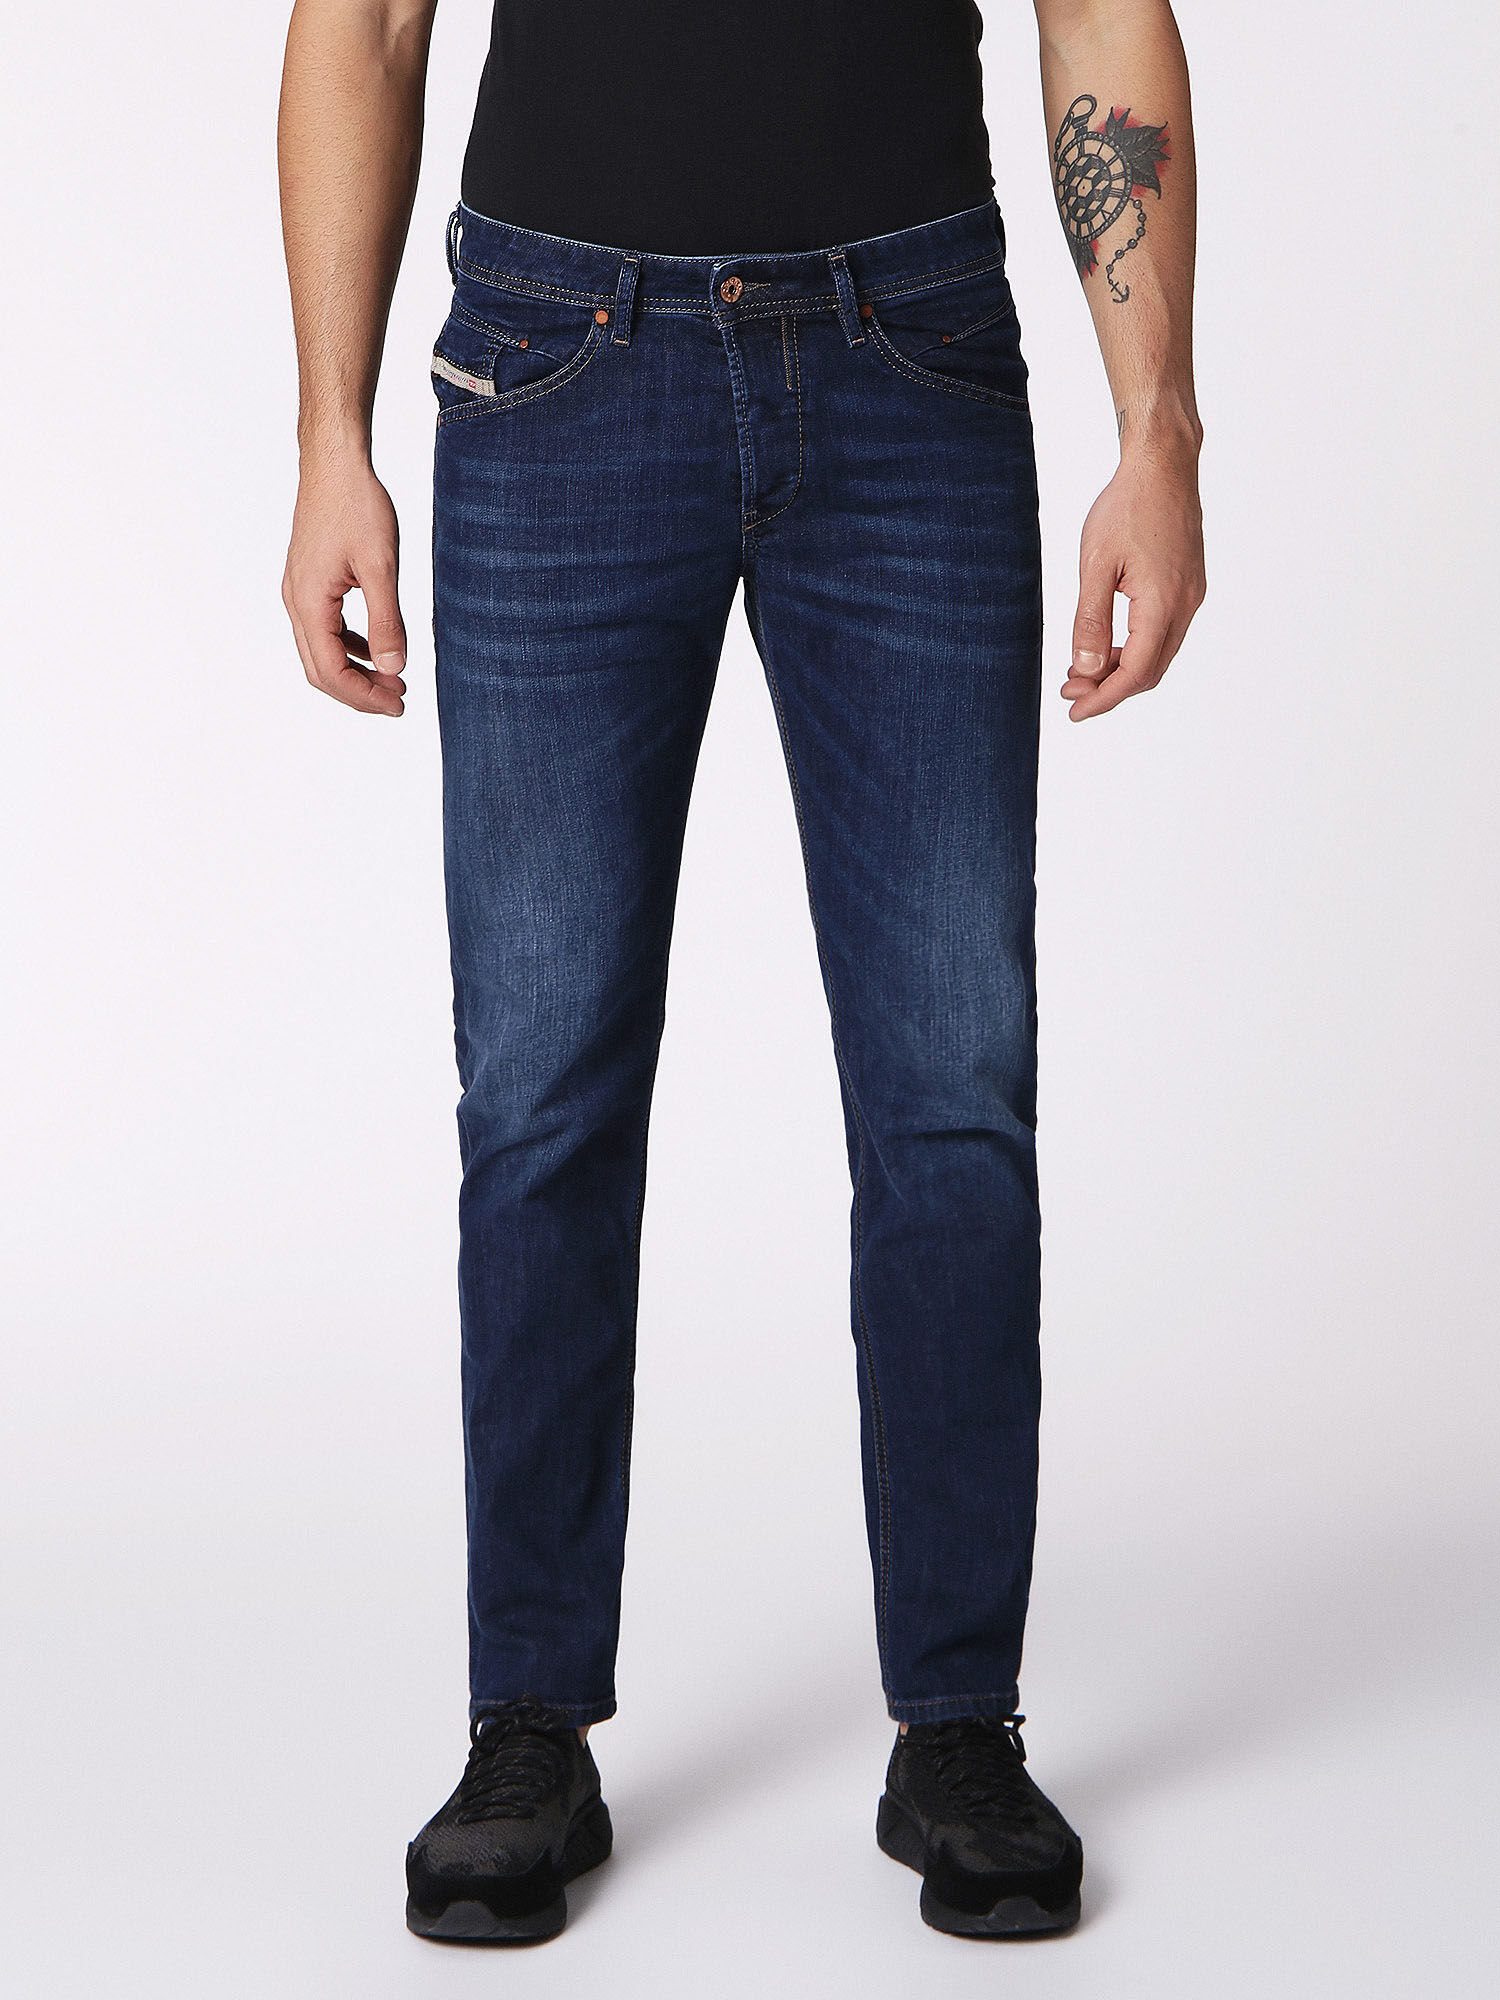 Diesel BELTHER - Vaqueros tapered - 084nr yNbWj8